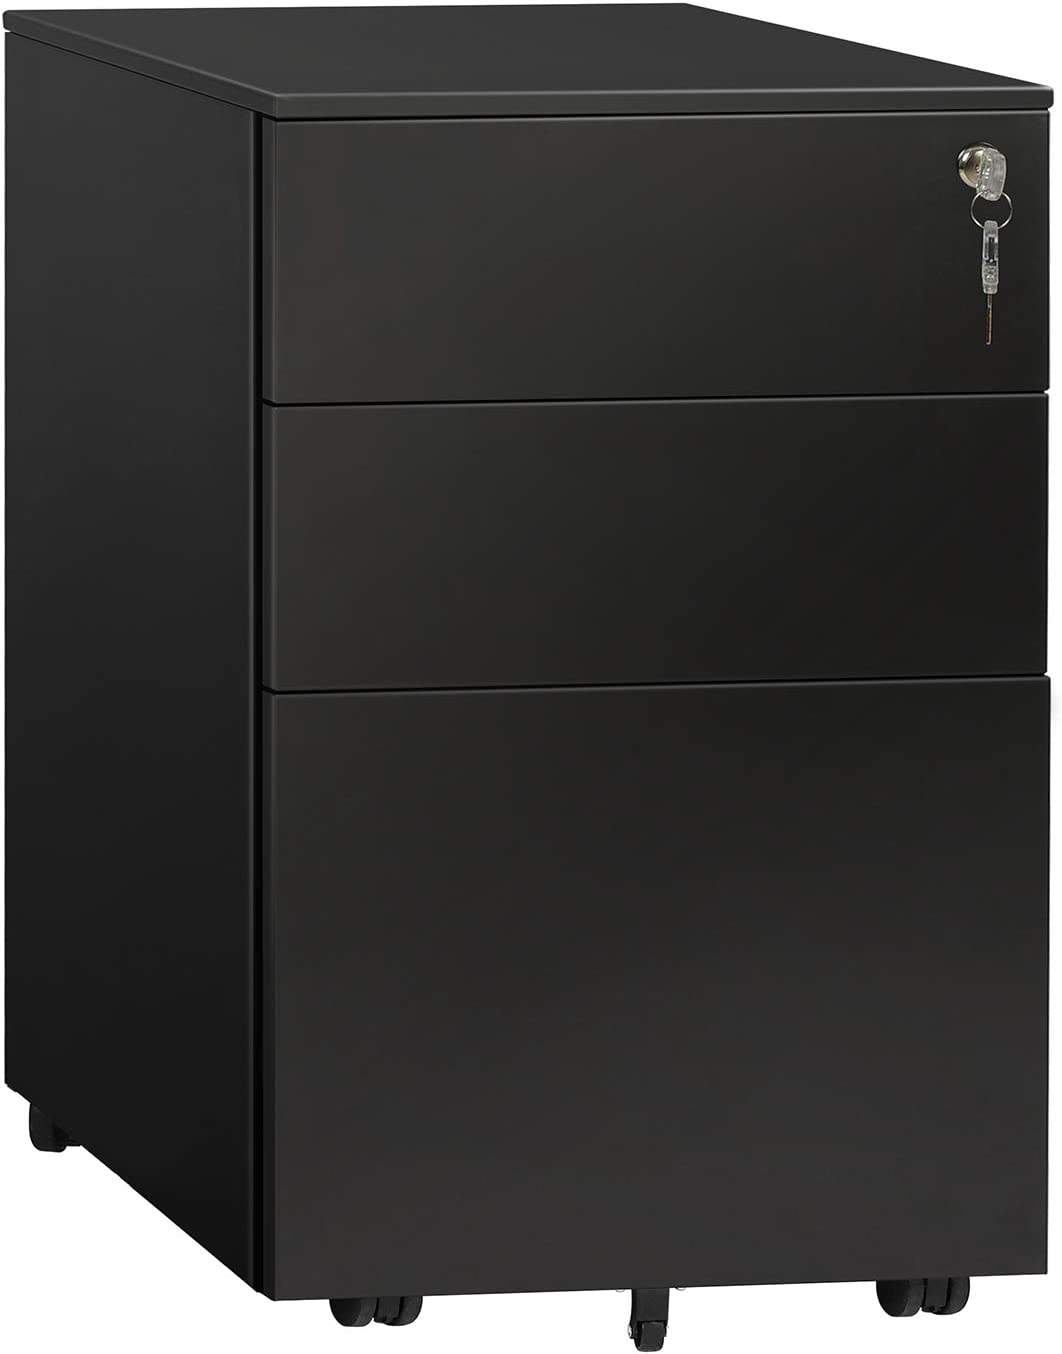 DEVAISE 3 Drawer File Cabinet with Lock, Steel Mobile Filing Cabinet, Office Pedestal, Fully Assembled Except Casters